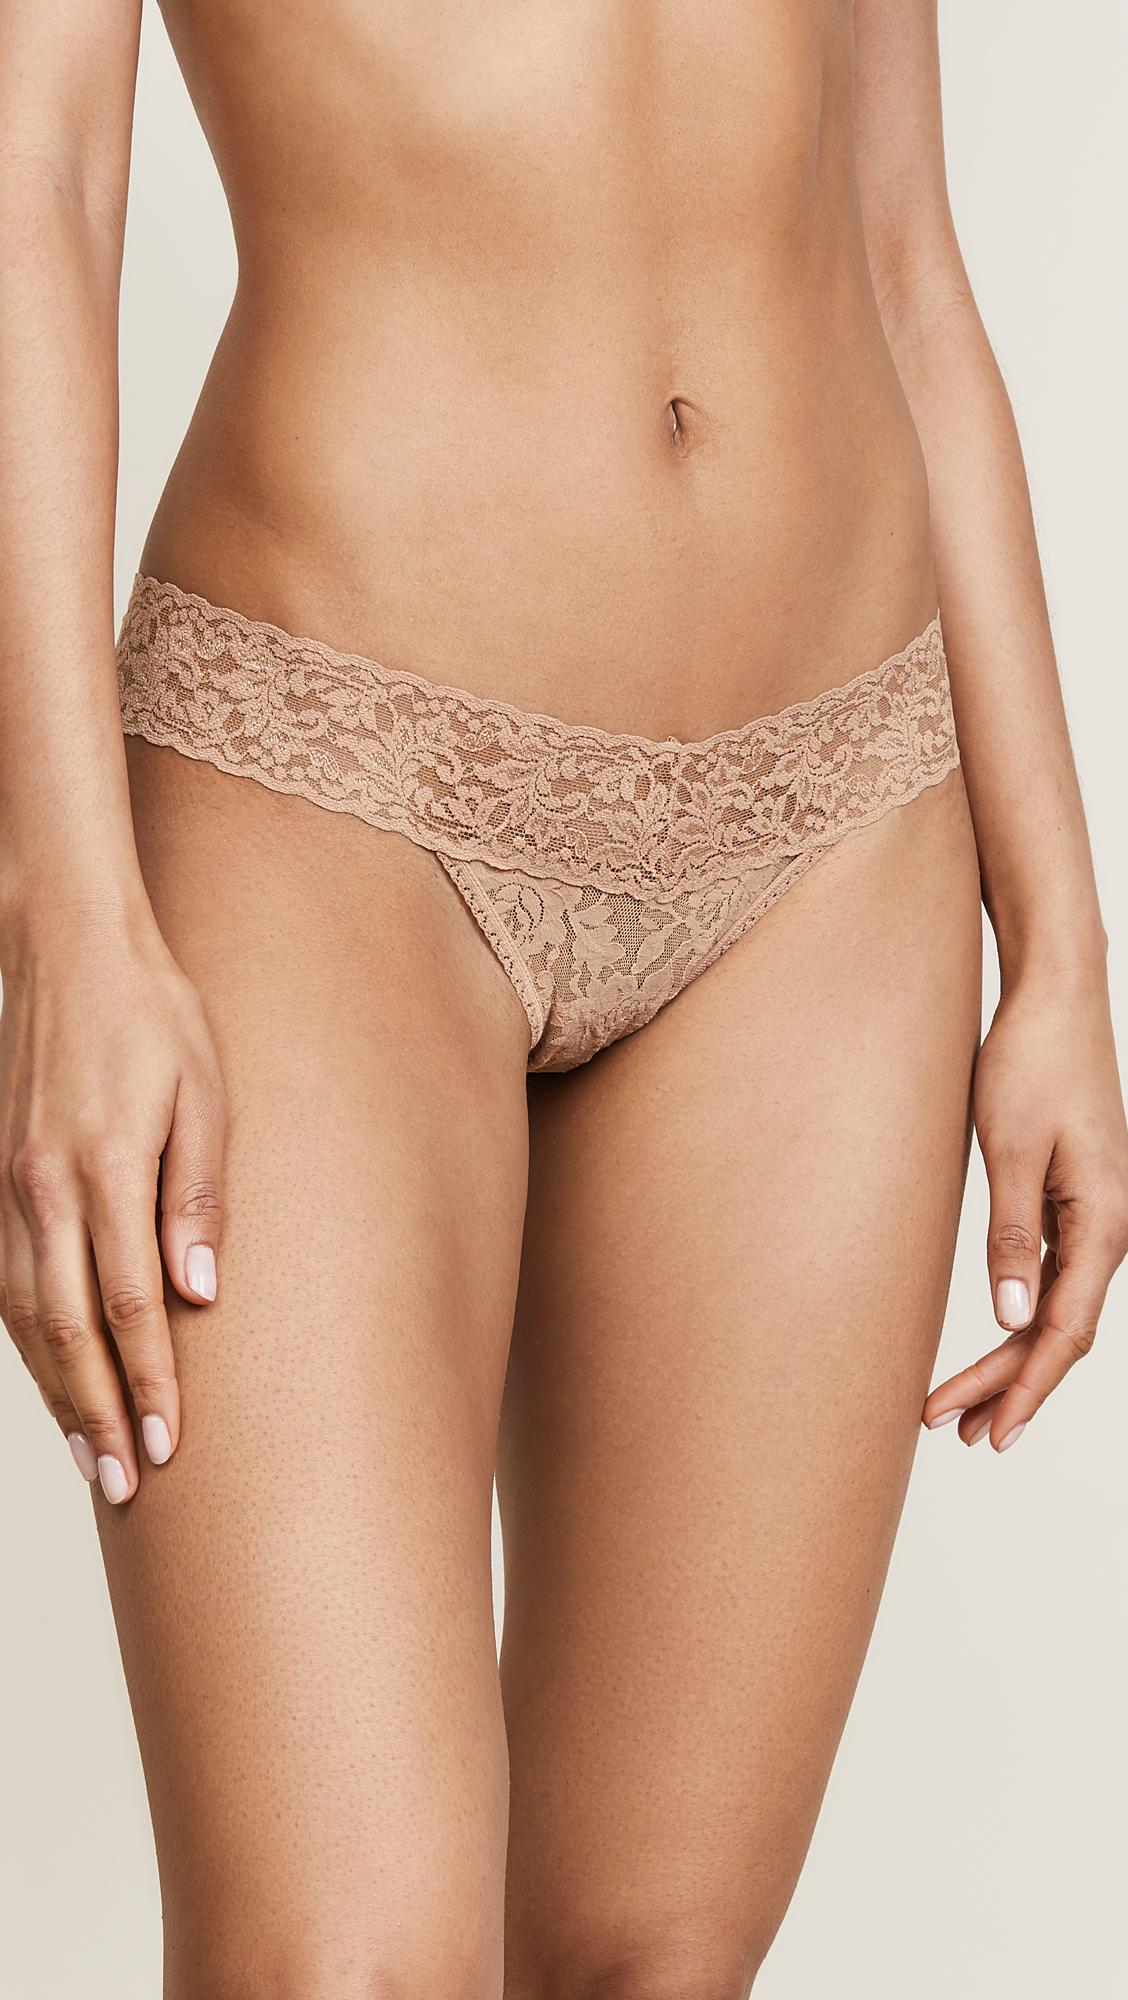 5b7493e86 Hanky Panky Signature Lace Low Rise Thong in Natural - Save 12% - Lyst